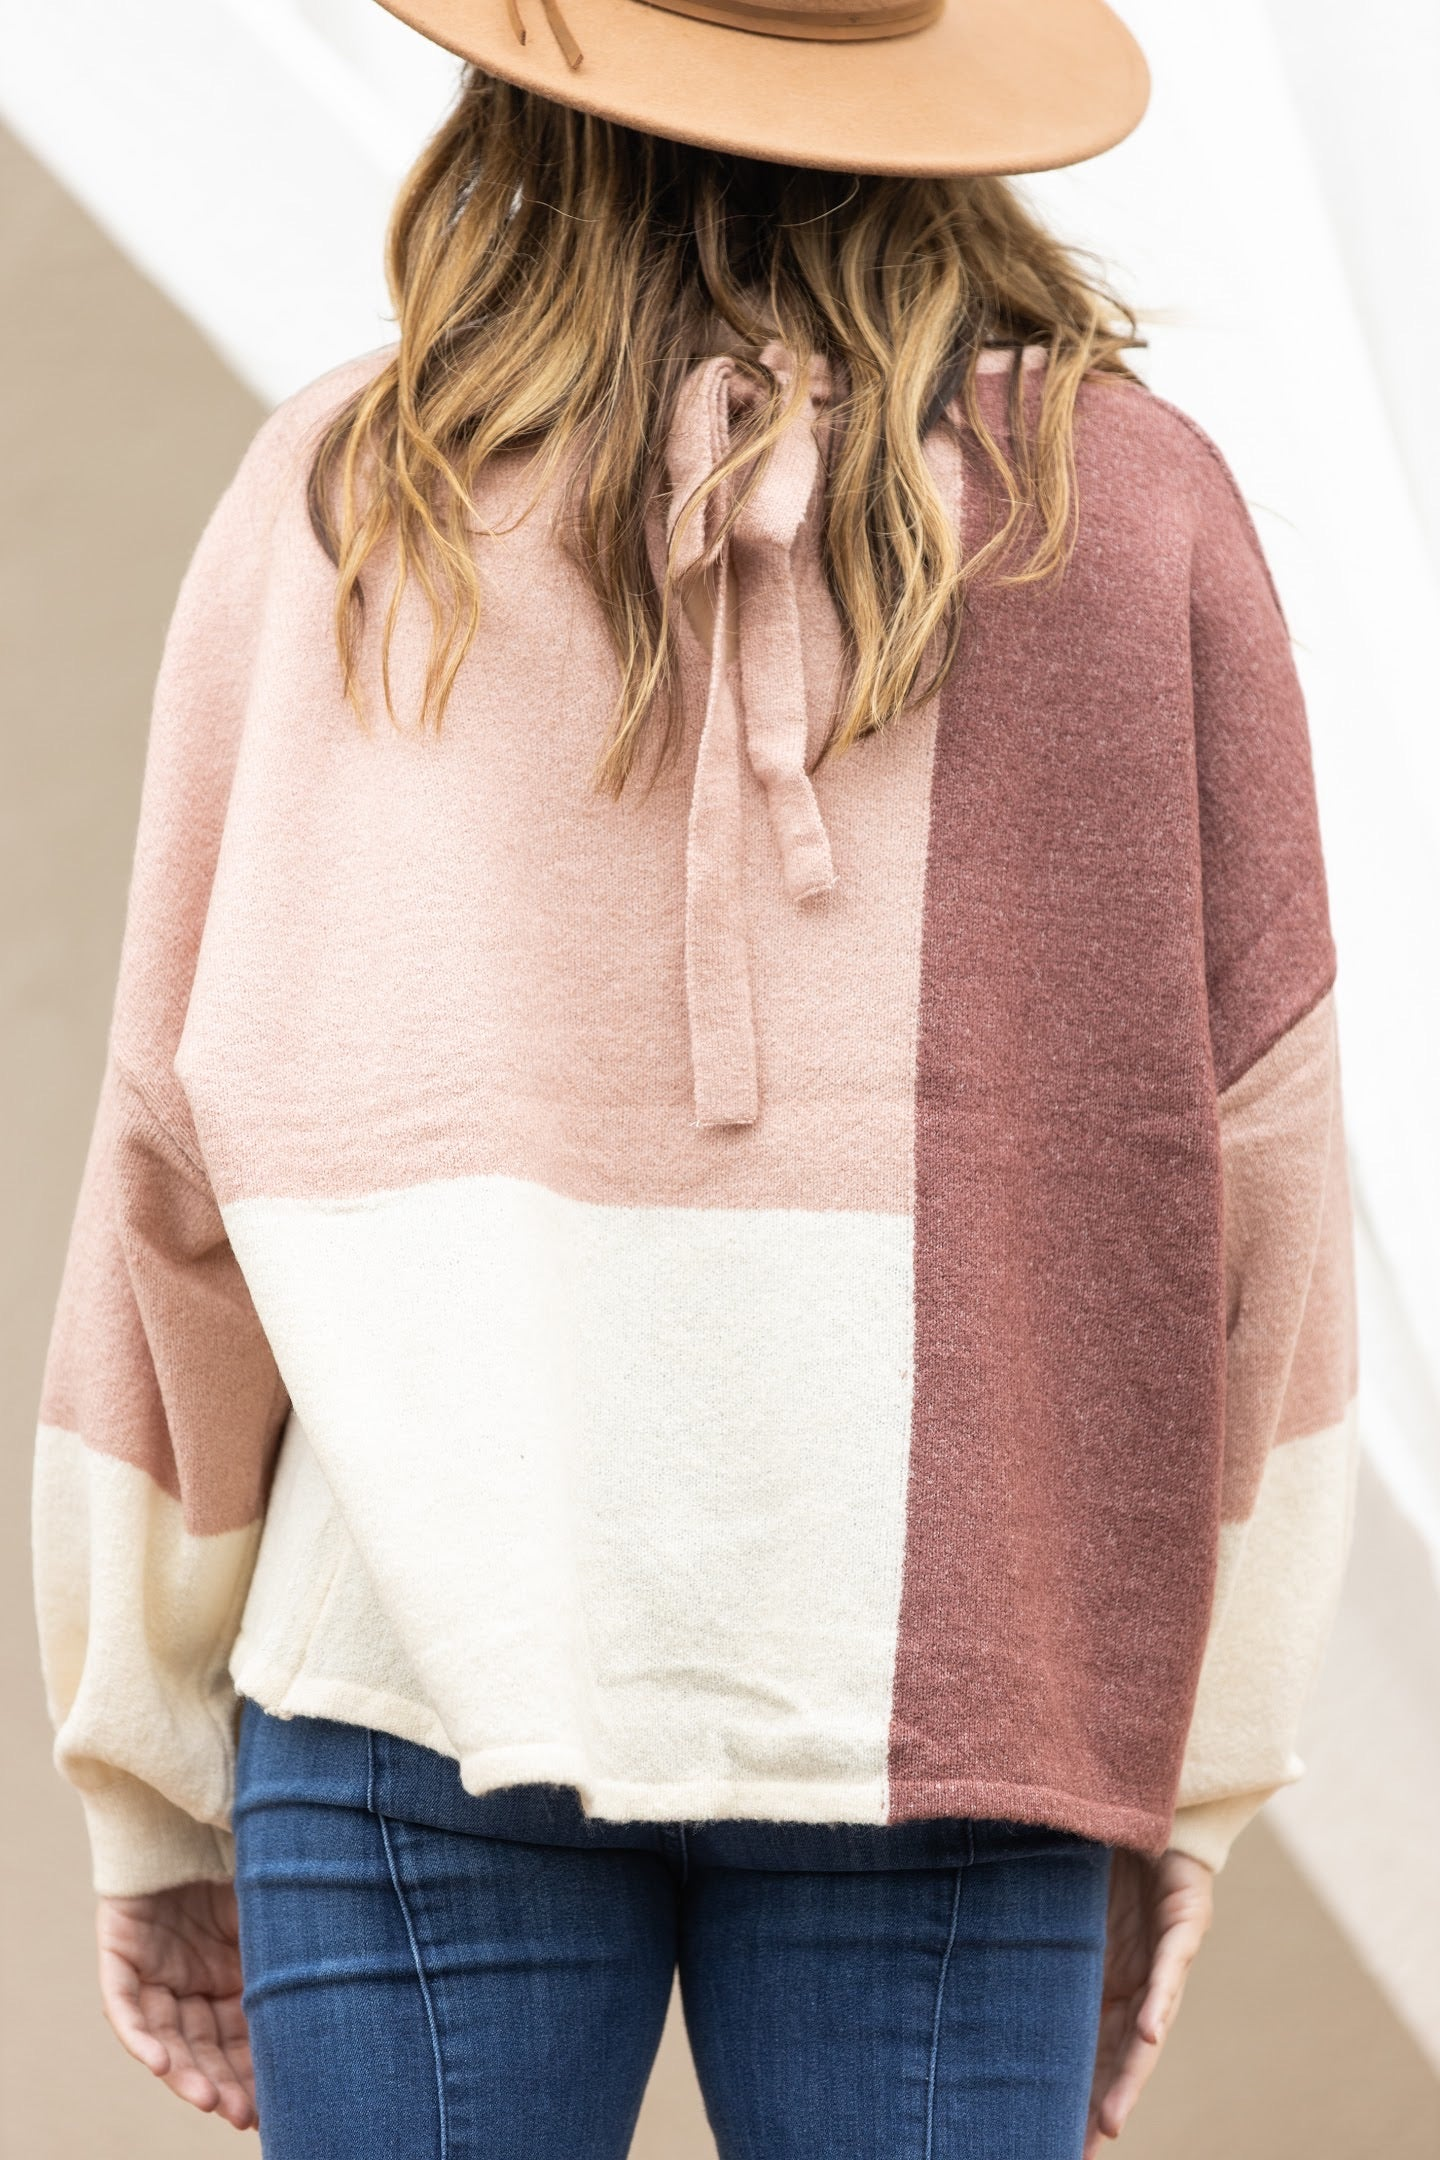 Weekend Getaway Plush Color Block Sweater: Mauve